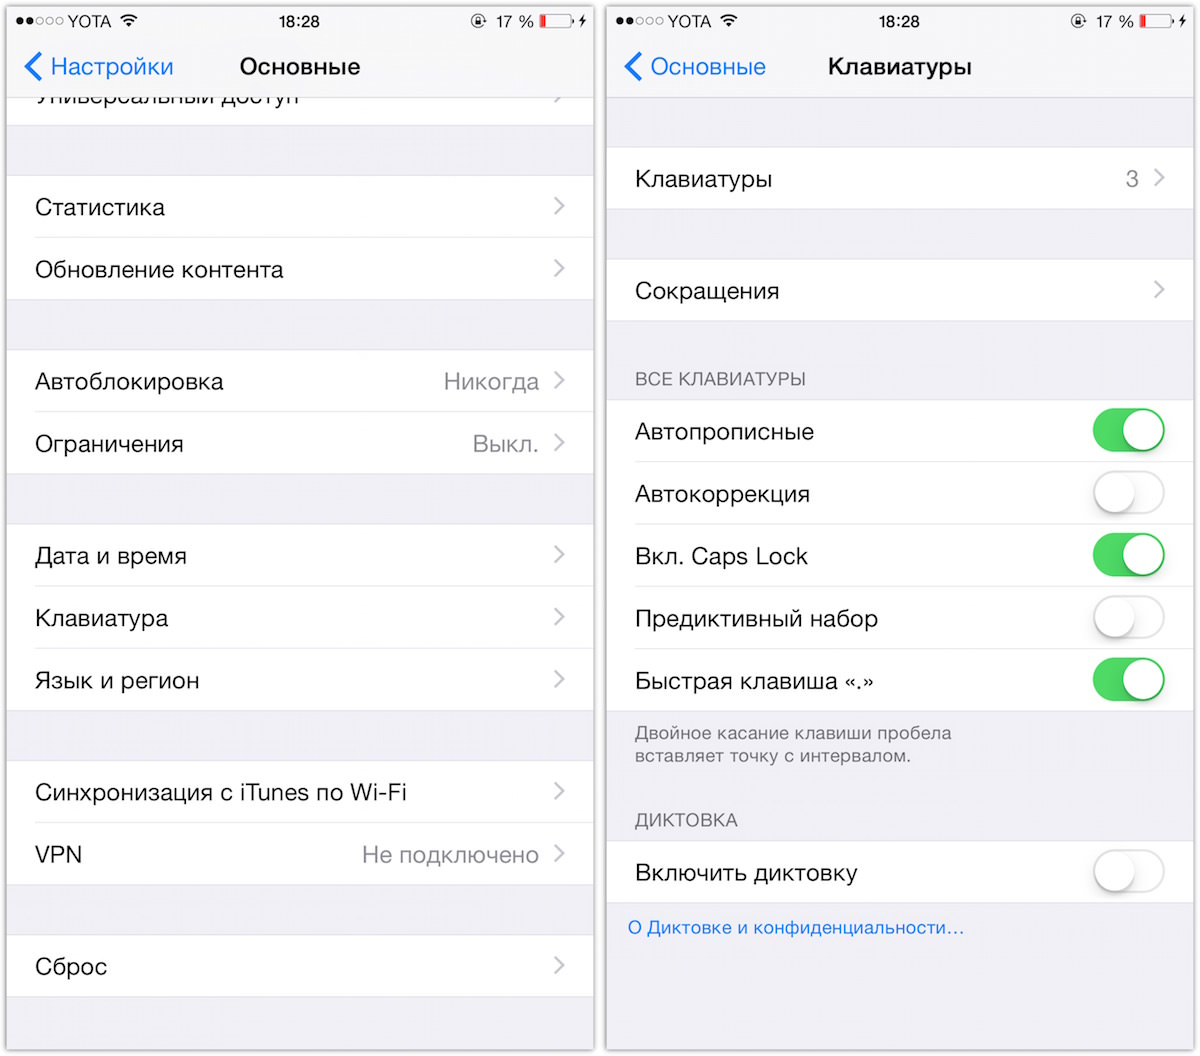 Атокоррекция iOS 8 iOS 9 iPhone iPad Russia iPod Touch Buy